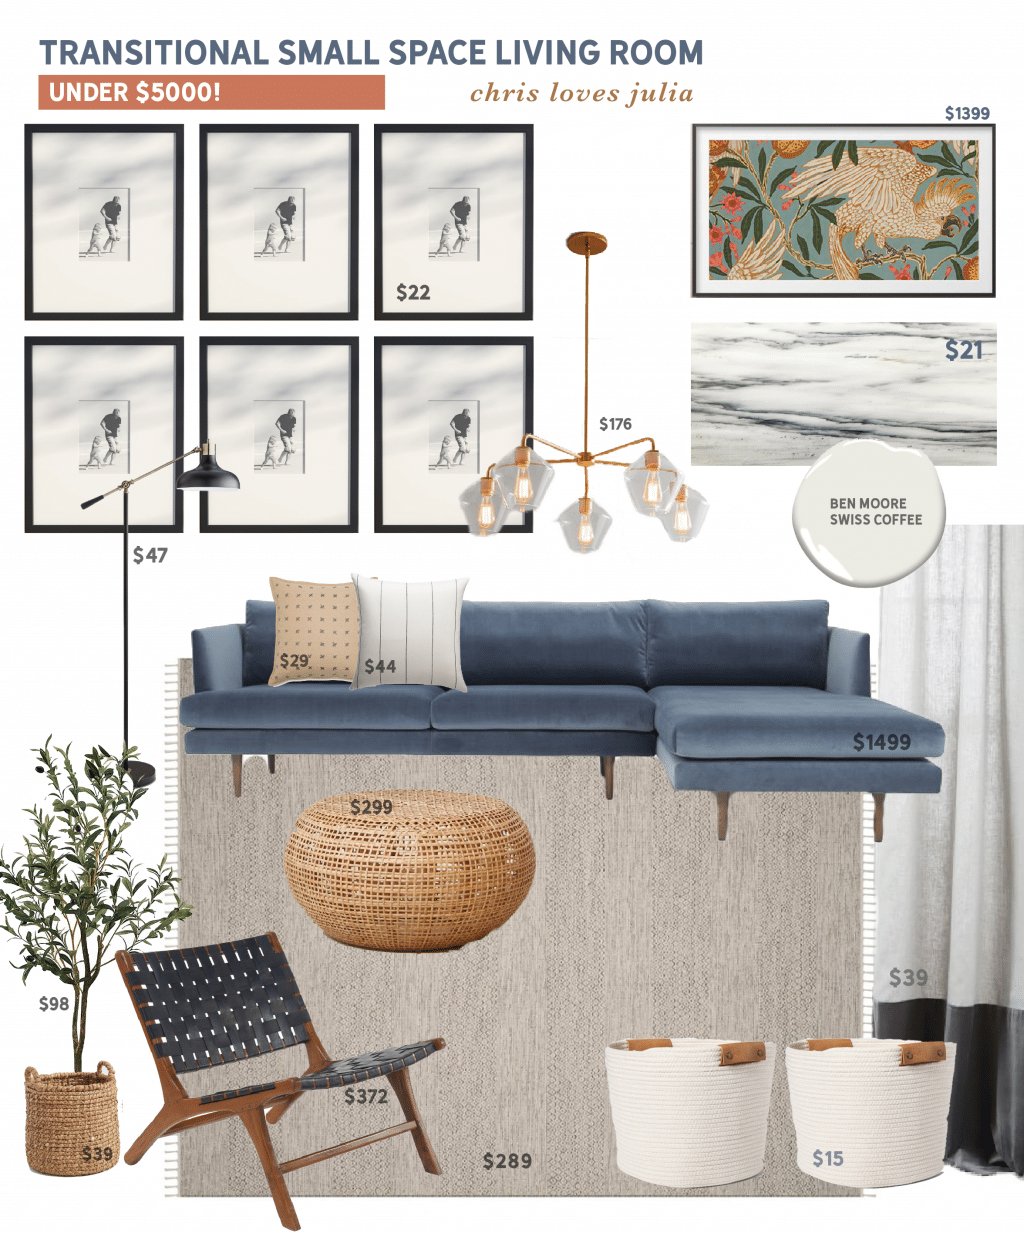 Mood Board Monday: A Transitional Small Space Living Room Under